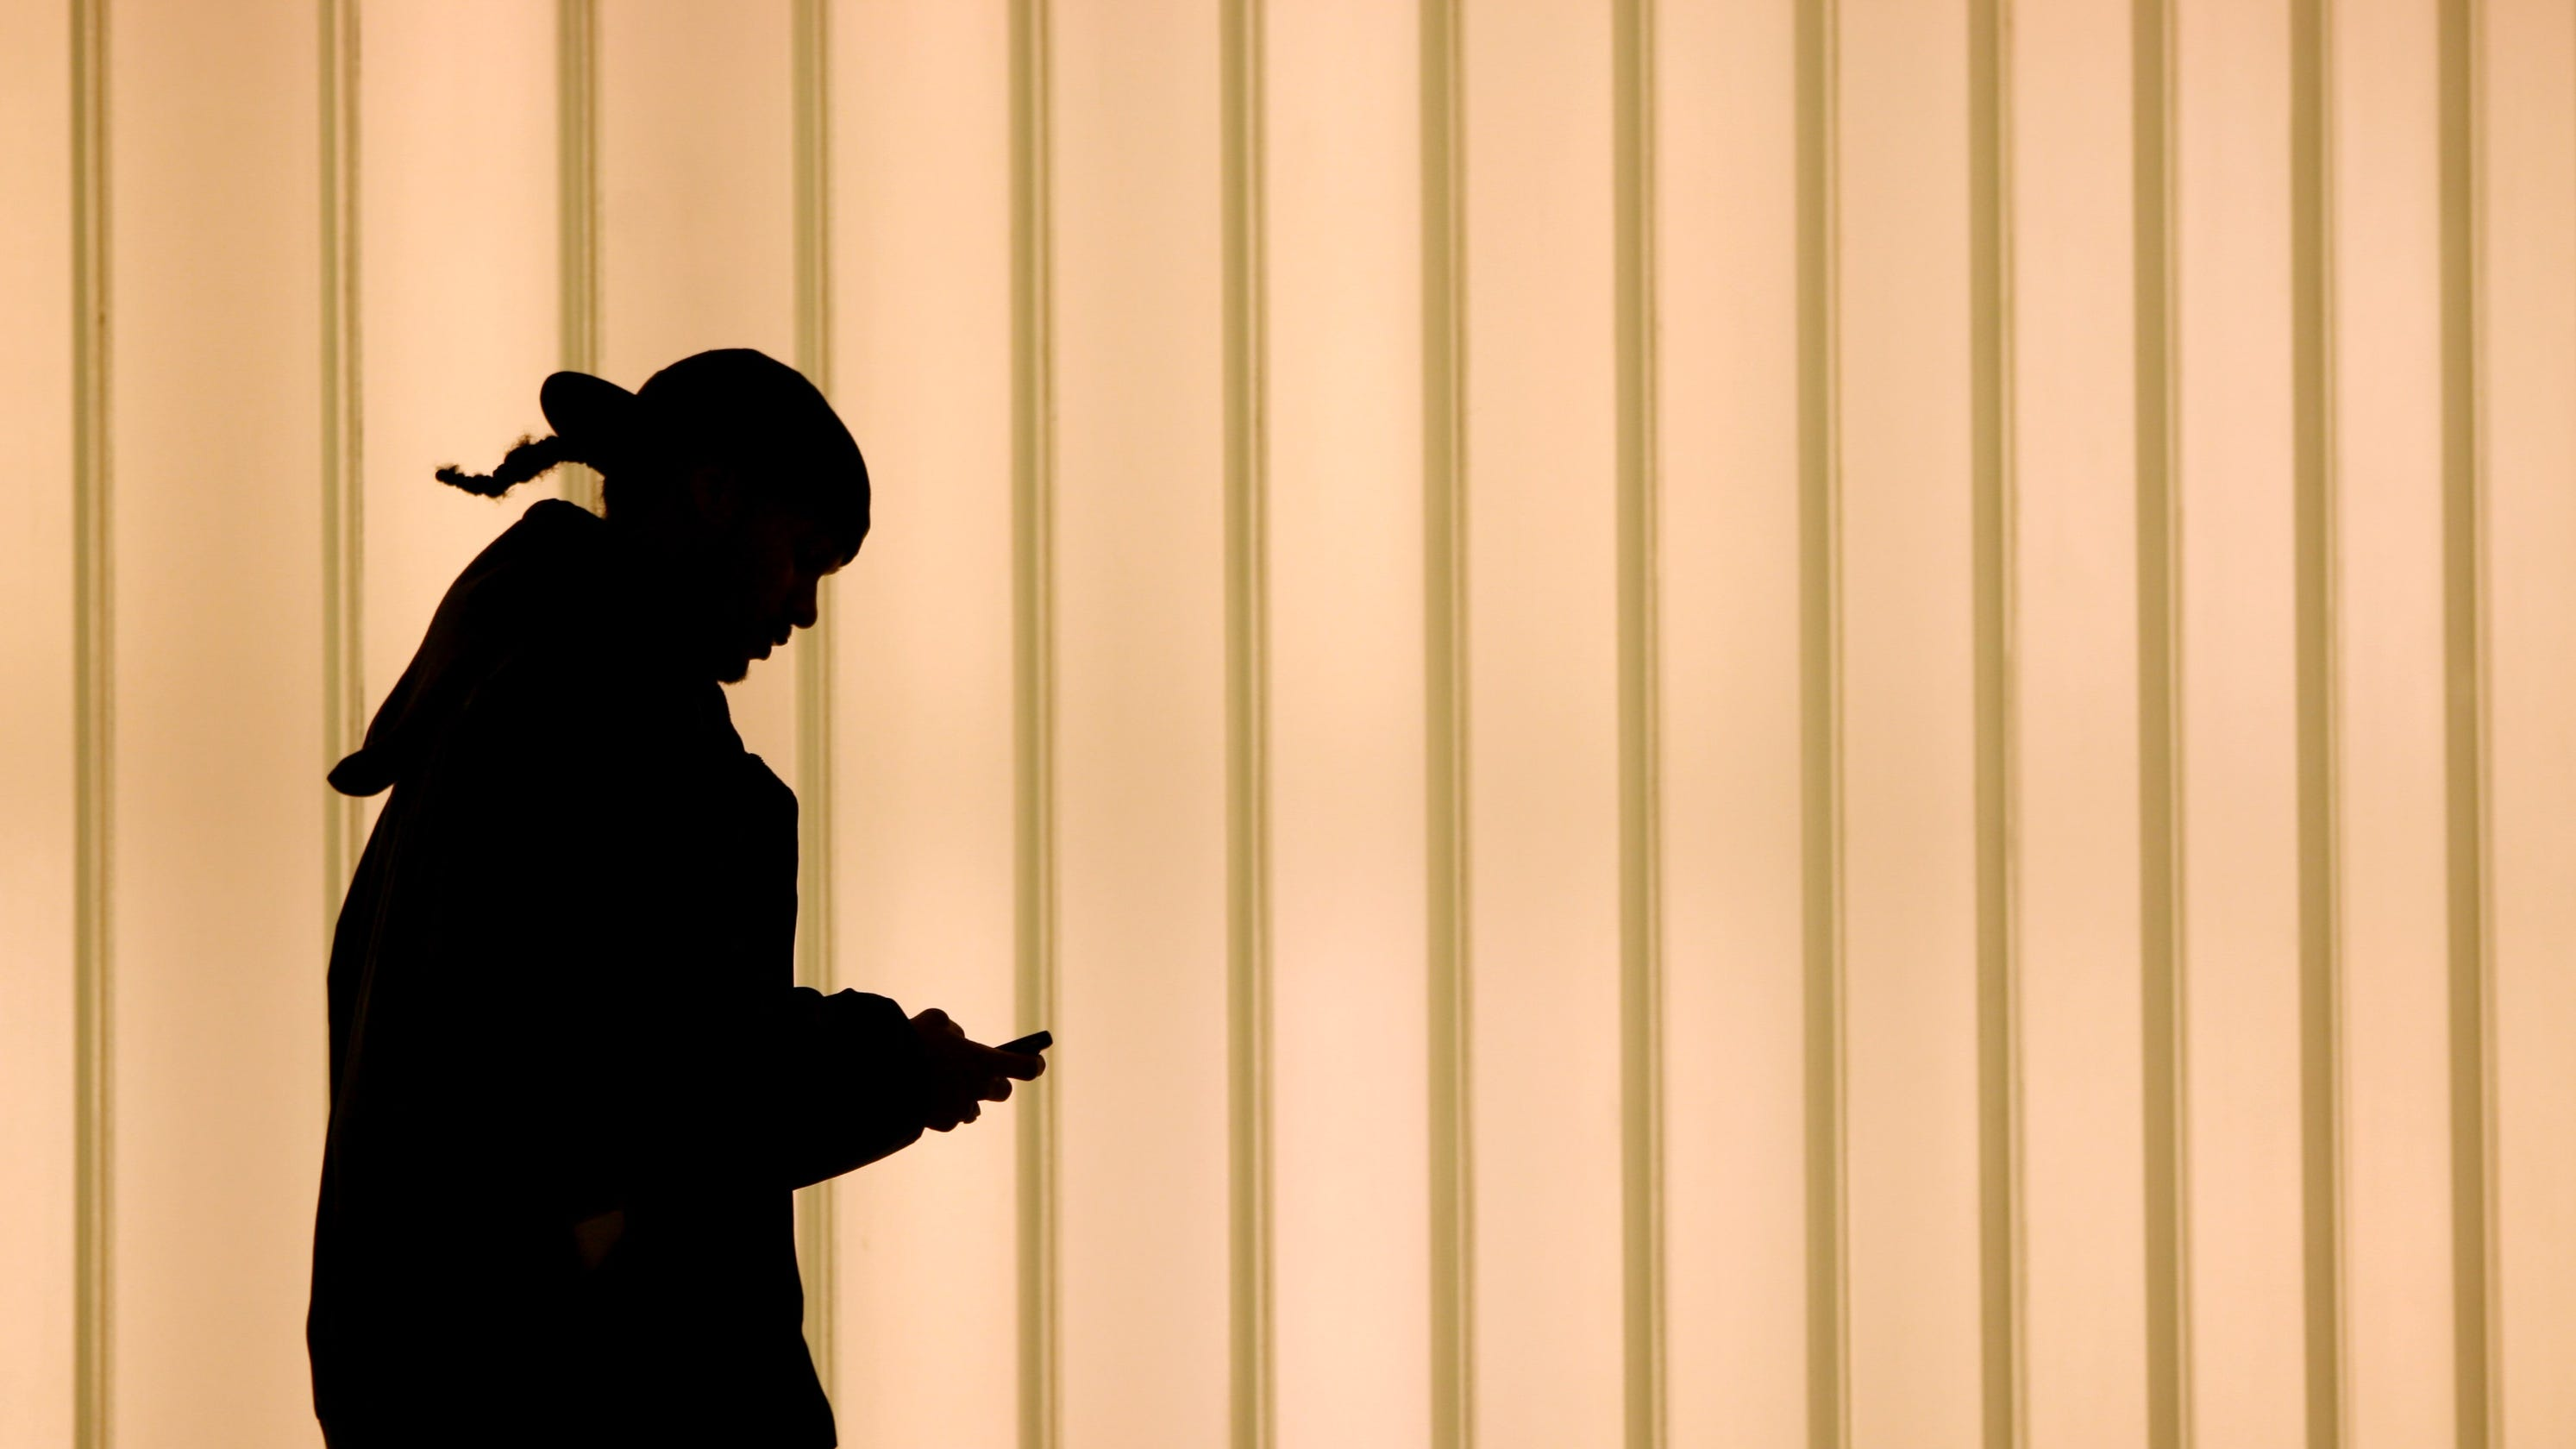 Who's misusing your personal data? Why we need federal privacy protection regulations.